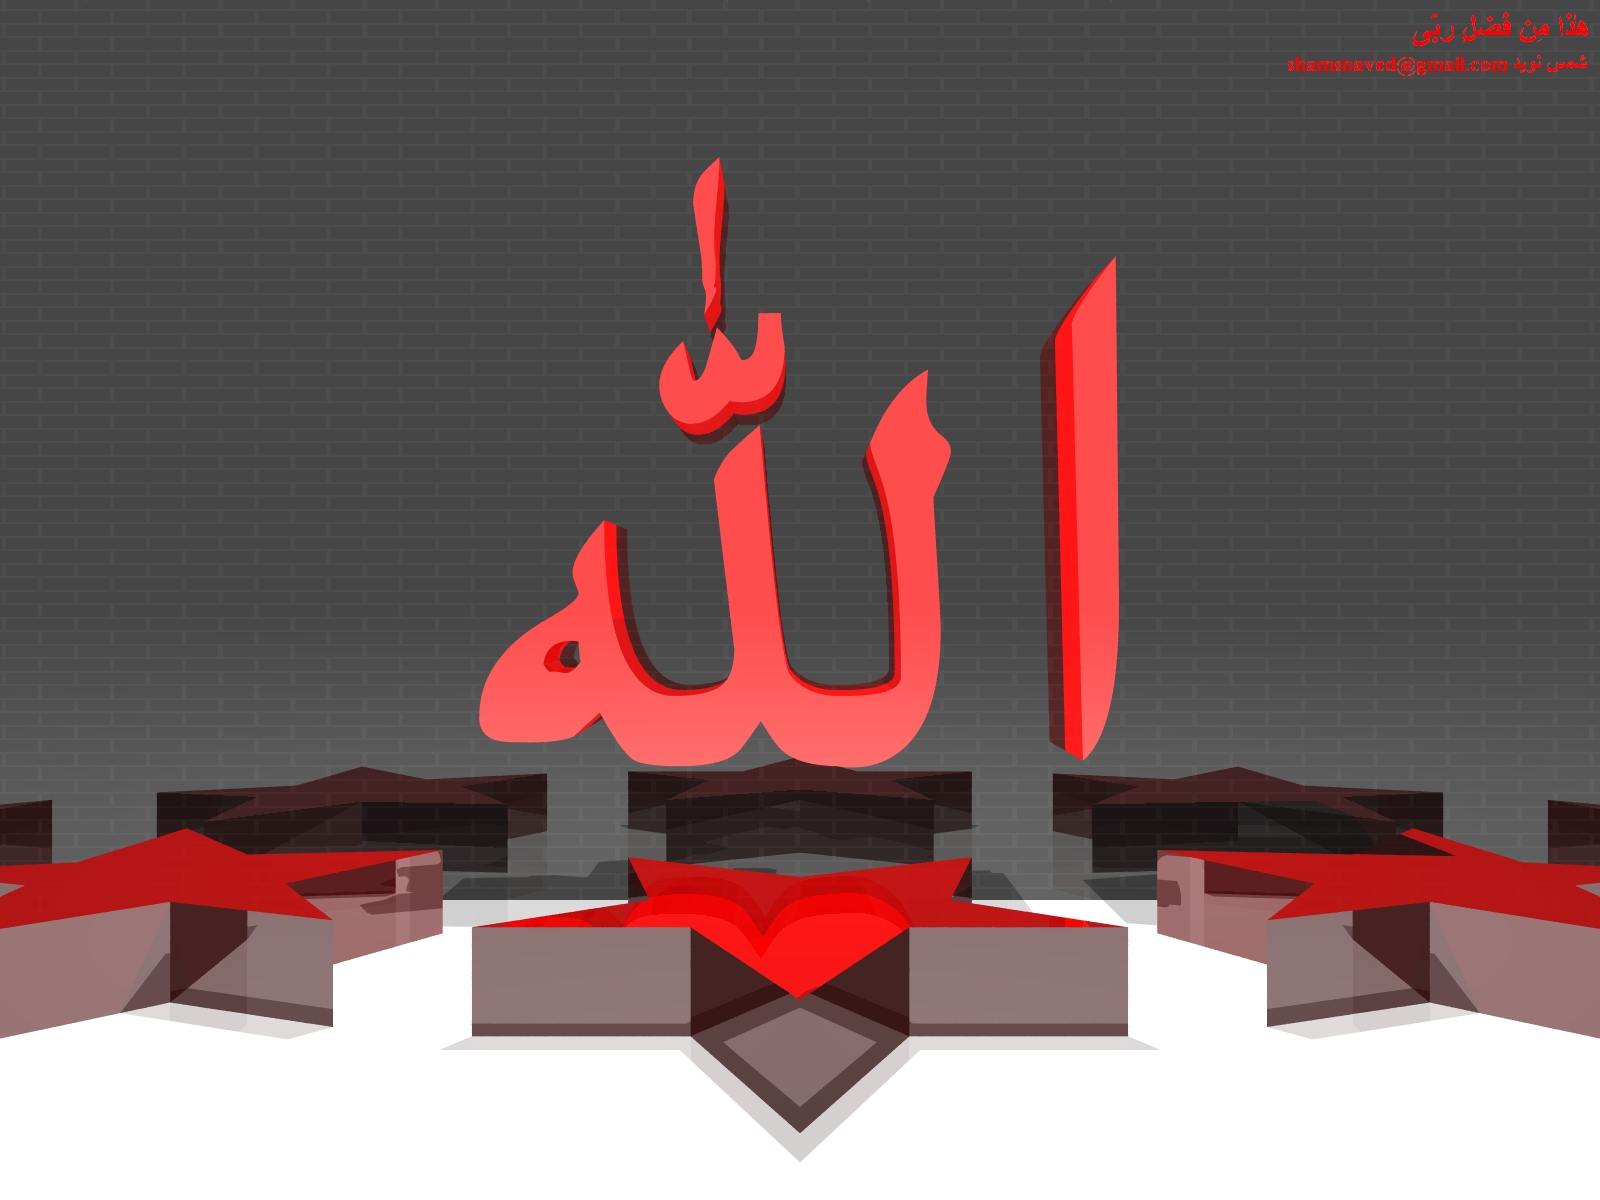 Allah wallpaper calligraphy islamic wallpapers Allah calligraphy wallpaper